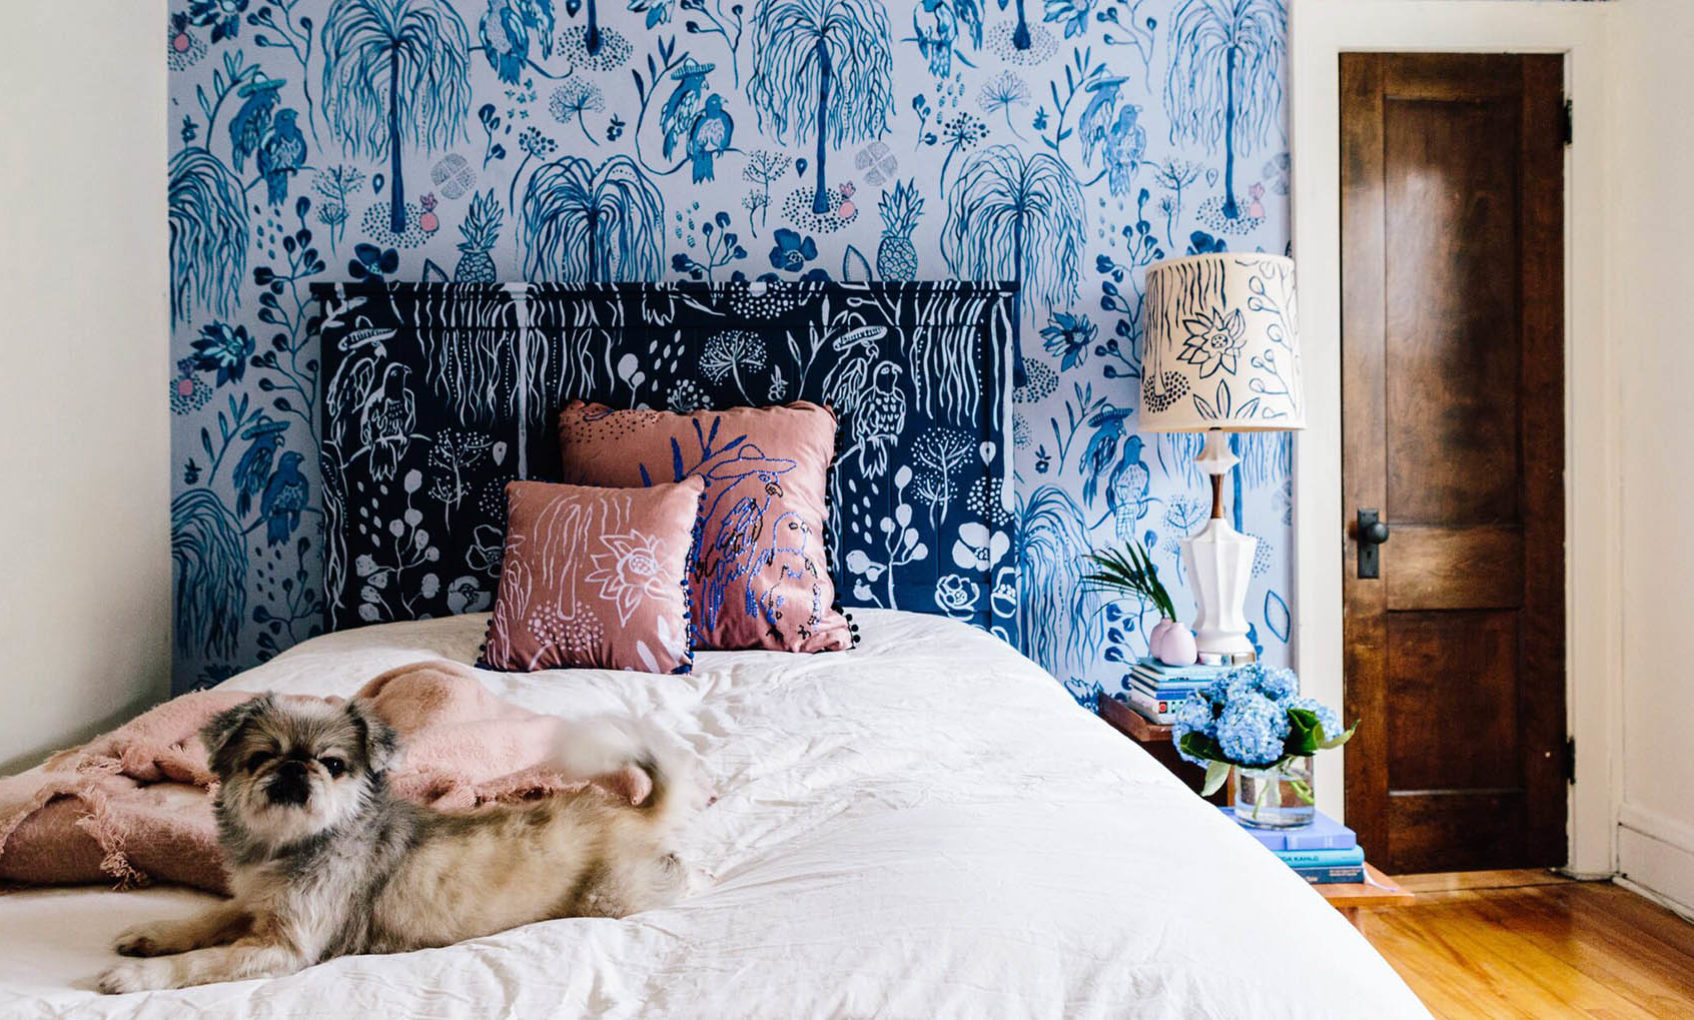 She She Hand-Painted Wallpaper